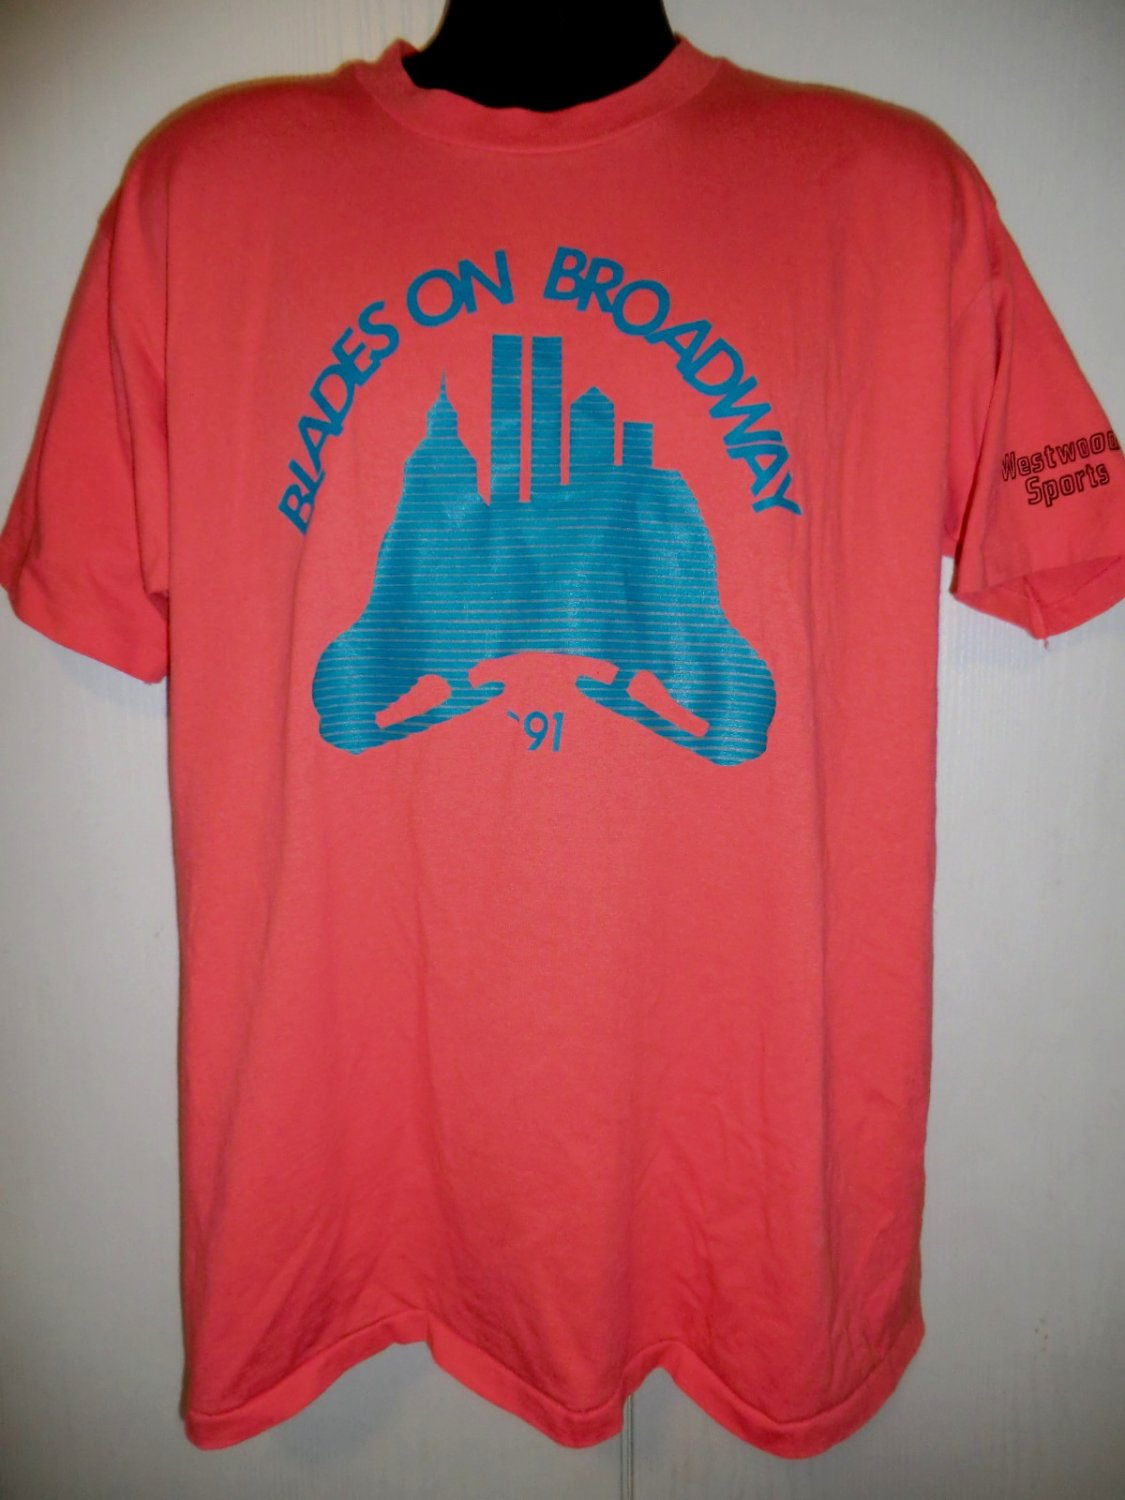 Vintage Blades on Broadway 1991 T-Shirt Size XL Westwood Sports Ice Skating